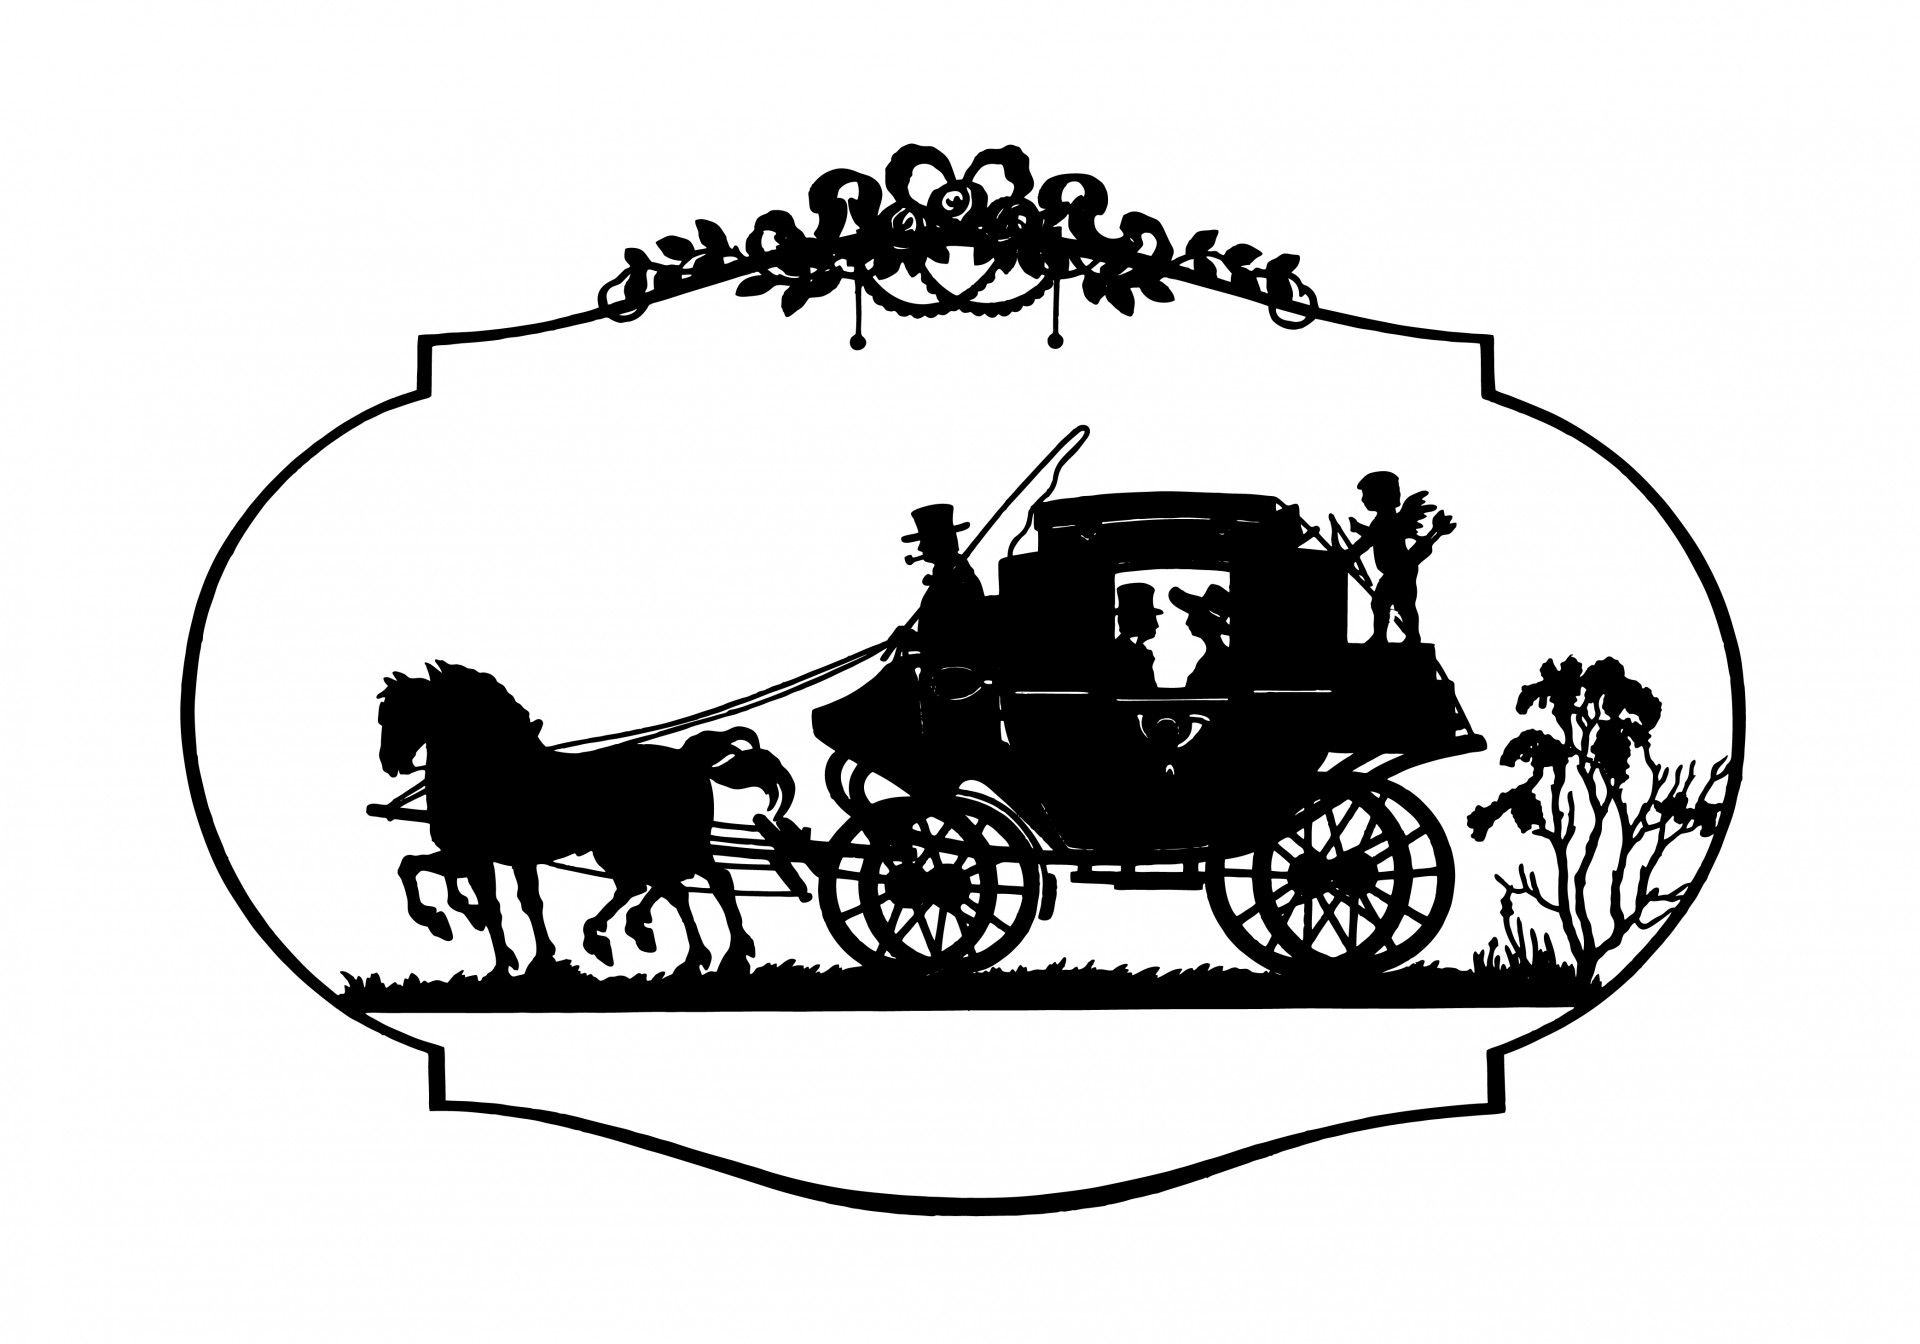 Horse Amp Carriage Vintage Clipart Free Stock Photo Hd